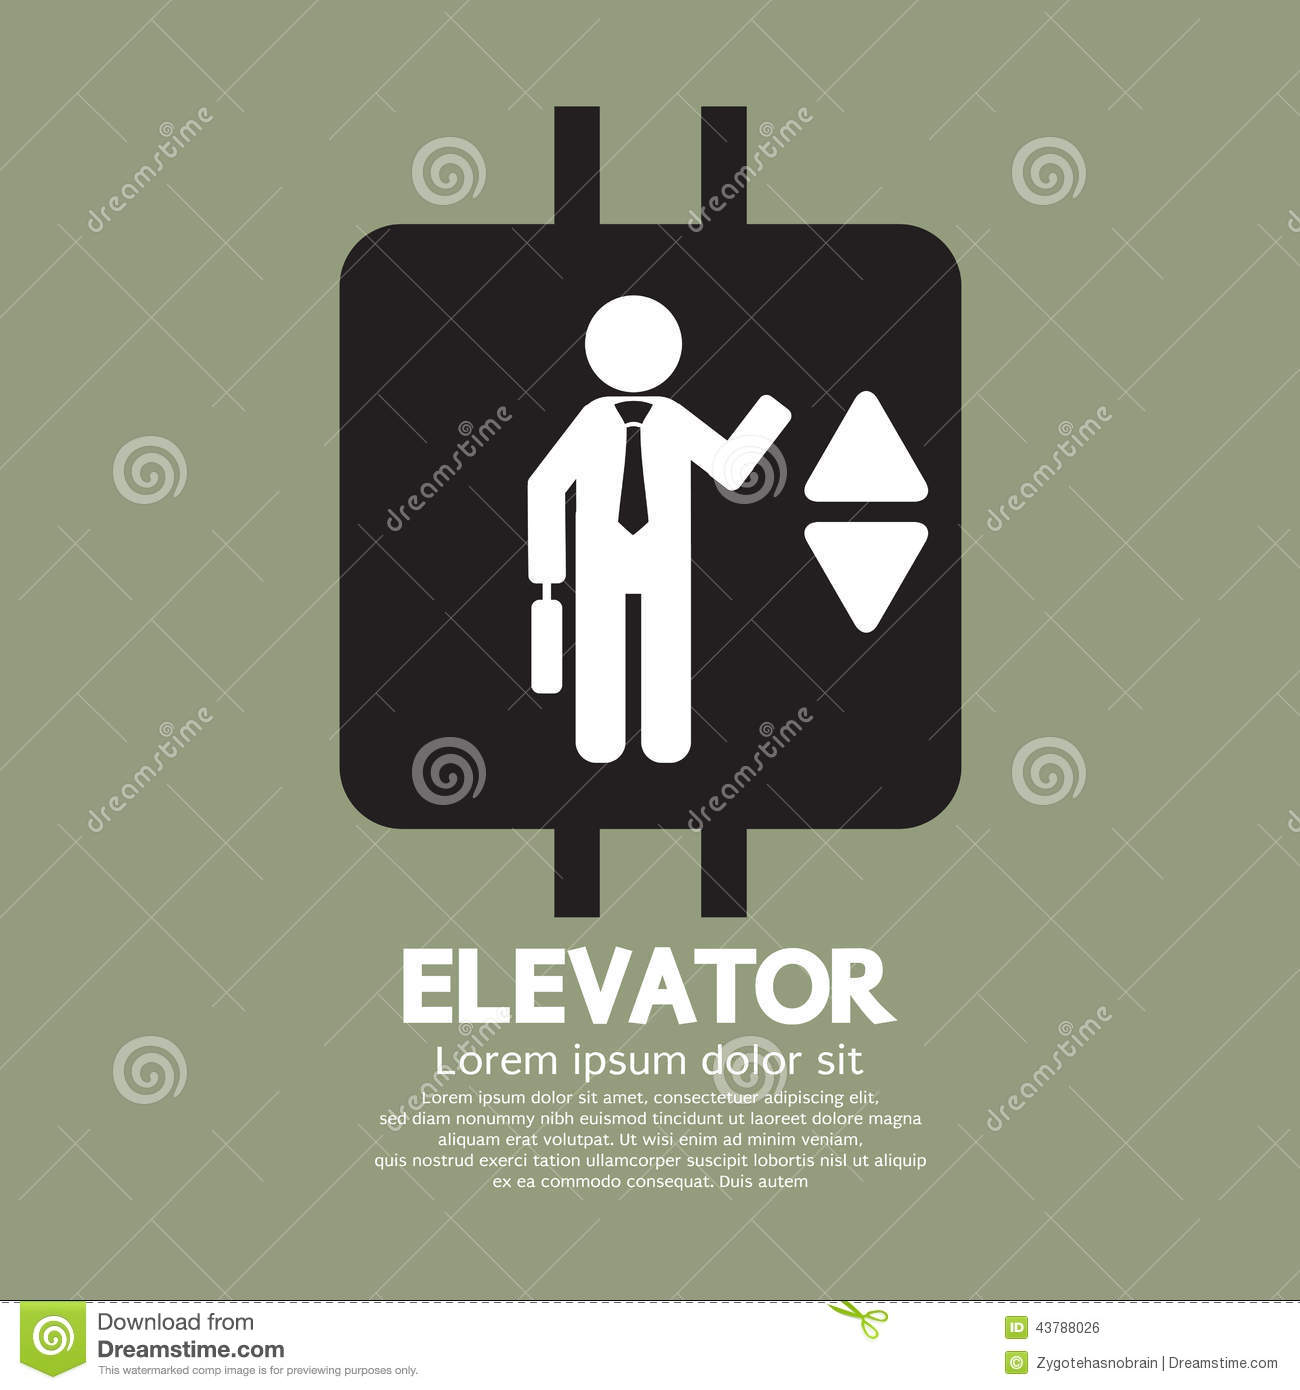 Basic Autocad Floor Plan Drawings further Floor Plan Sketch Symbols also Escalator In Floor Plan together with Floor Plan Furniture Symbols For Drawing in addition Stock Illustration Elevator Graphic Symbol Vector Illustration Image43788026. on elevation symbol on floor plan